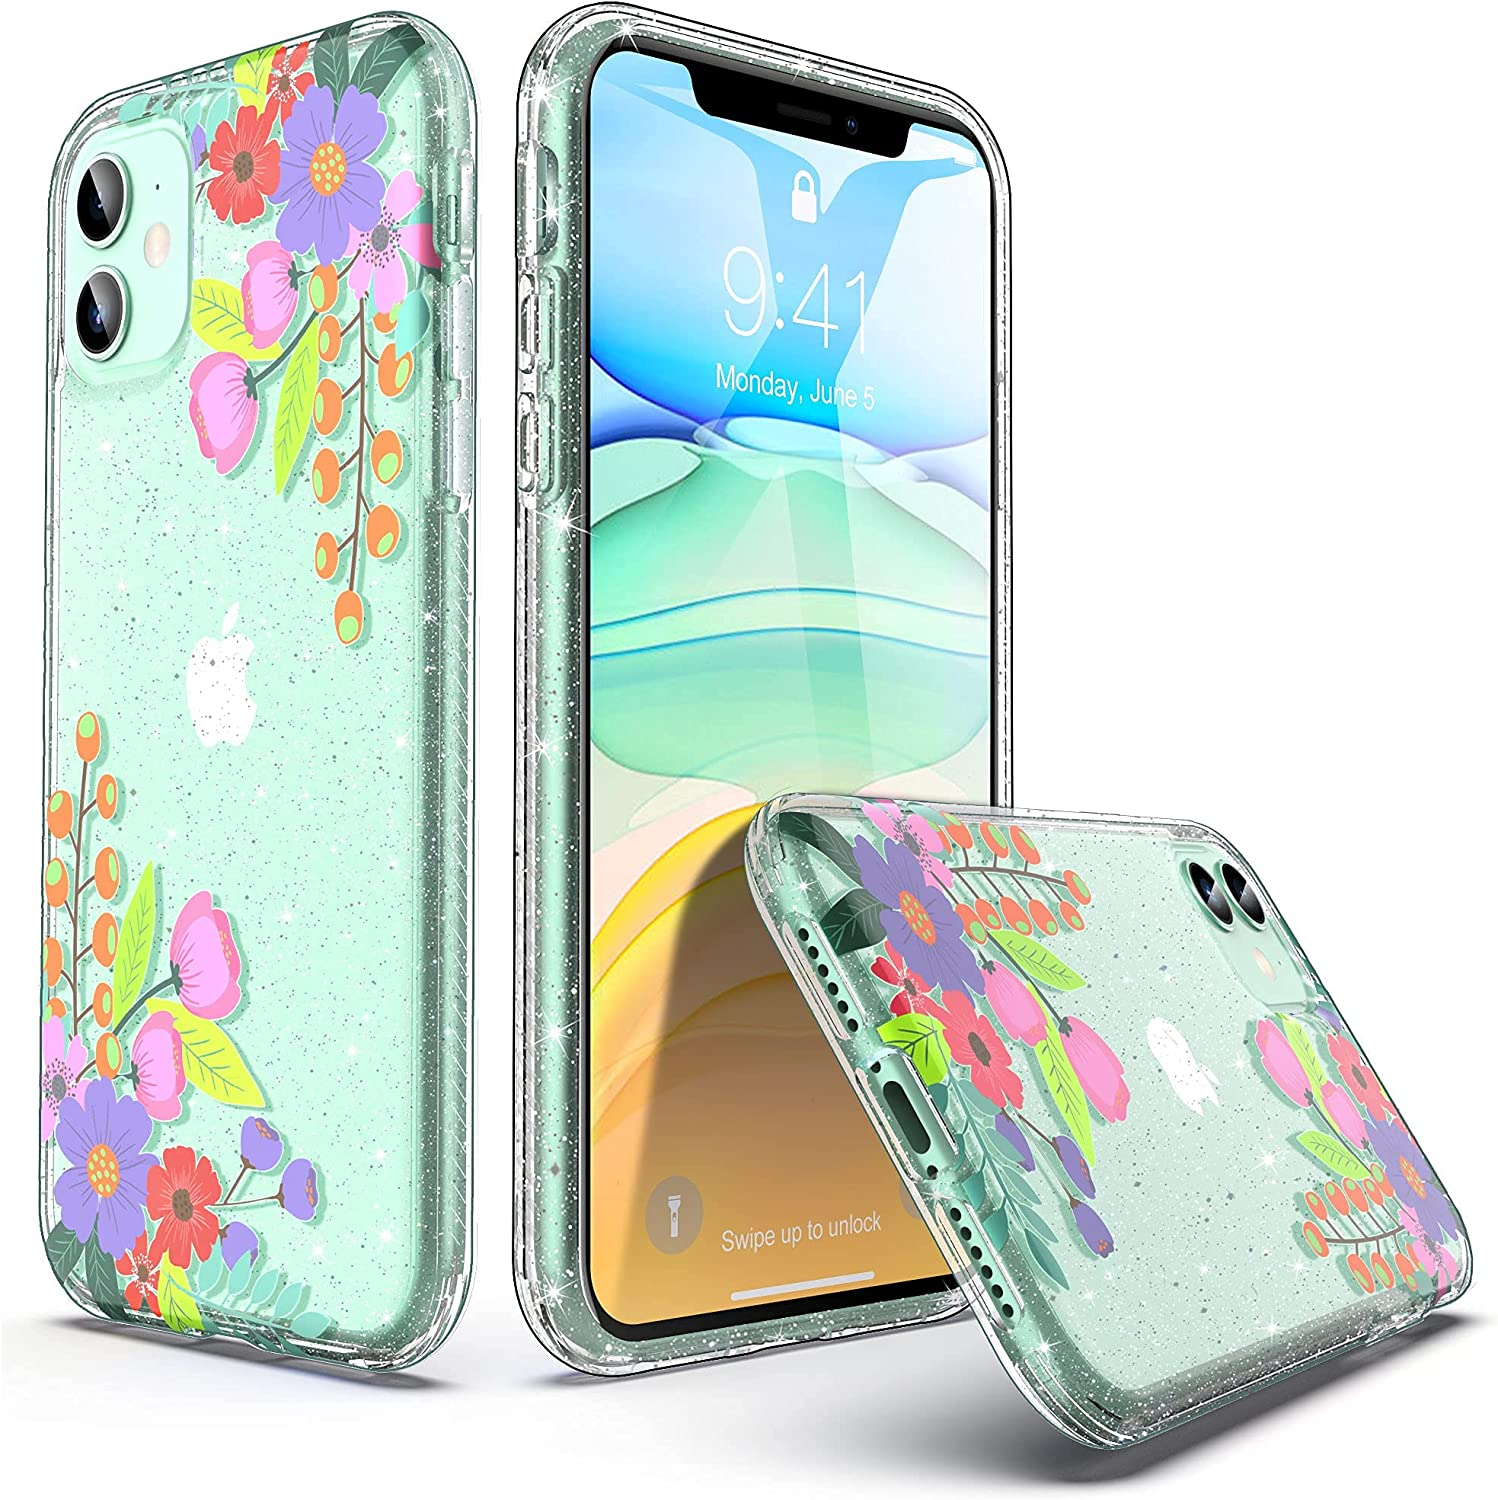 ULAK Compatible with iPhone 11 Case, Clear with Designed Hybrid Protective Phone Case Slim Anti-Scratch Shock Absorption TPU Bumper Cover for iPhone 11 6.1 inch (2019), Flower